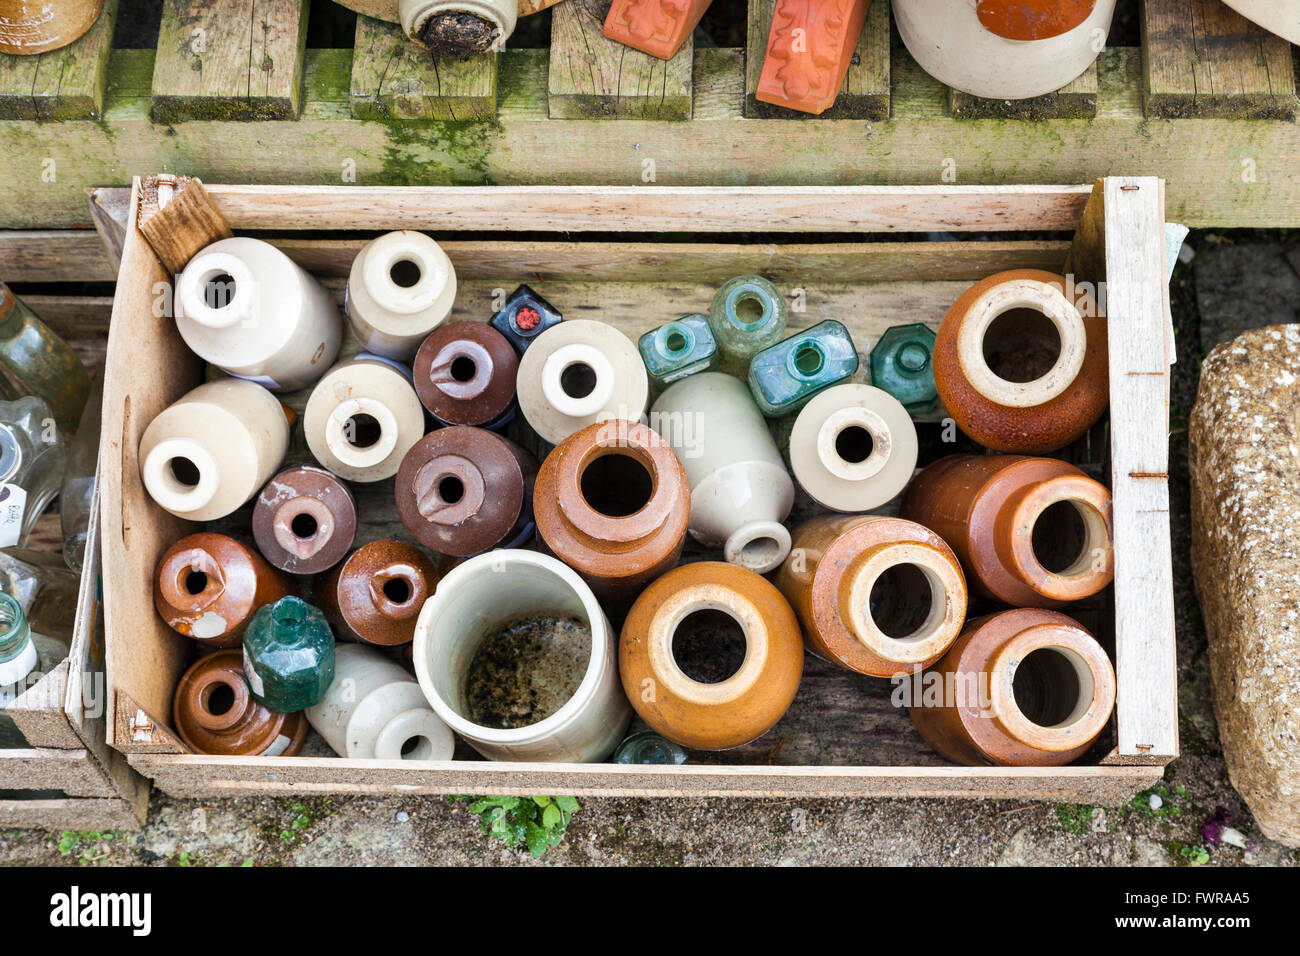 Wooden crate of old stoneware and glass bottles for sale - Stock Image